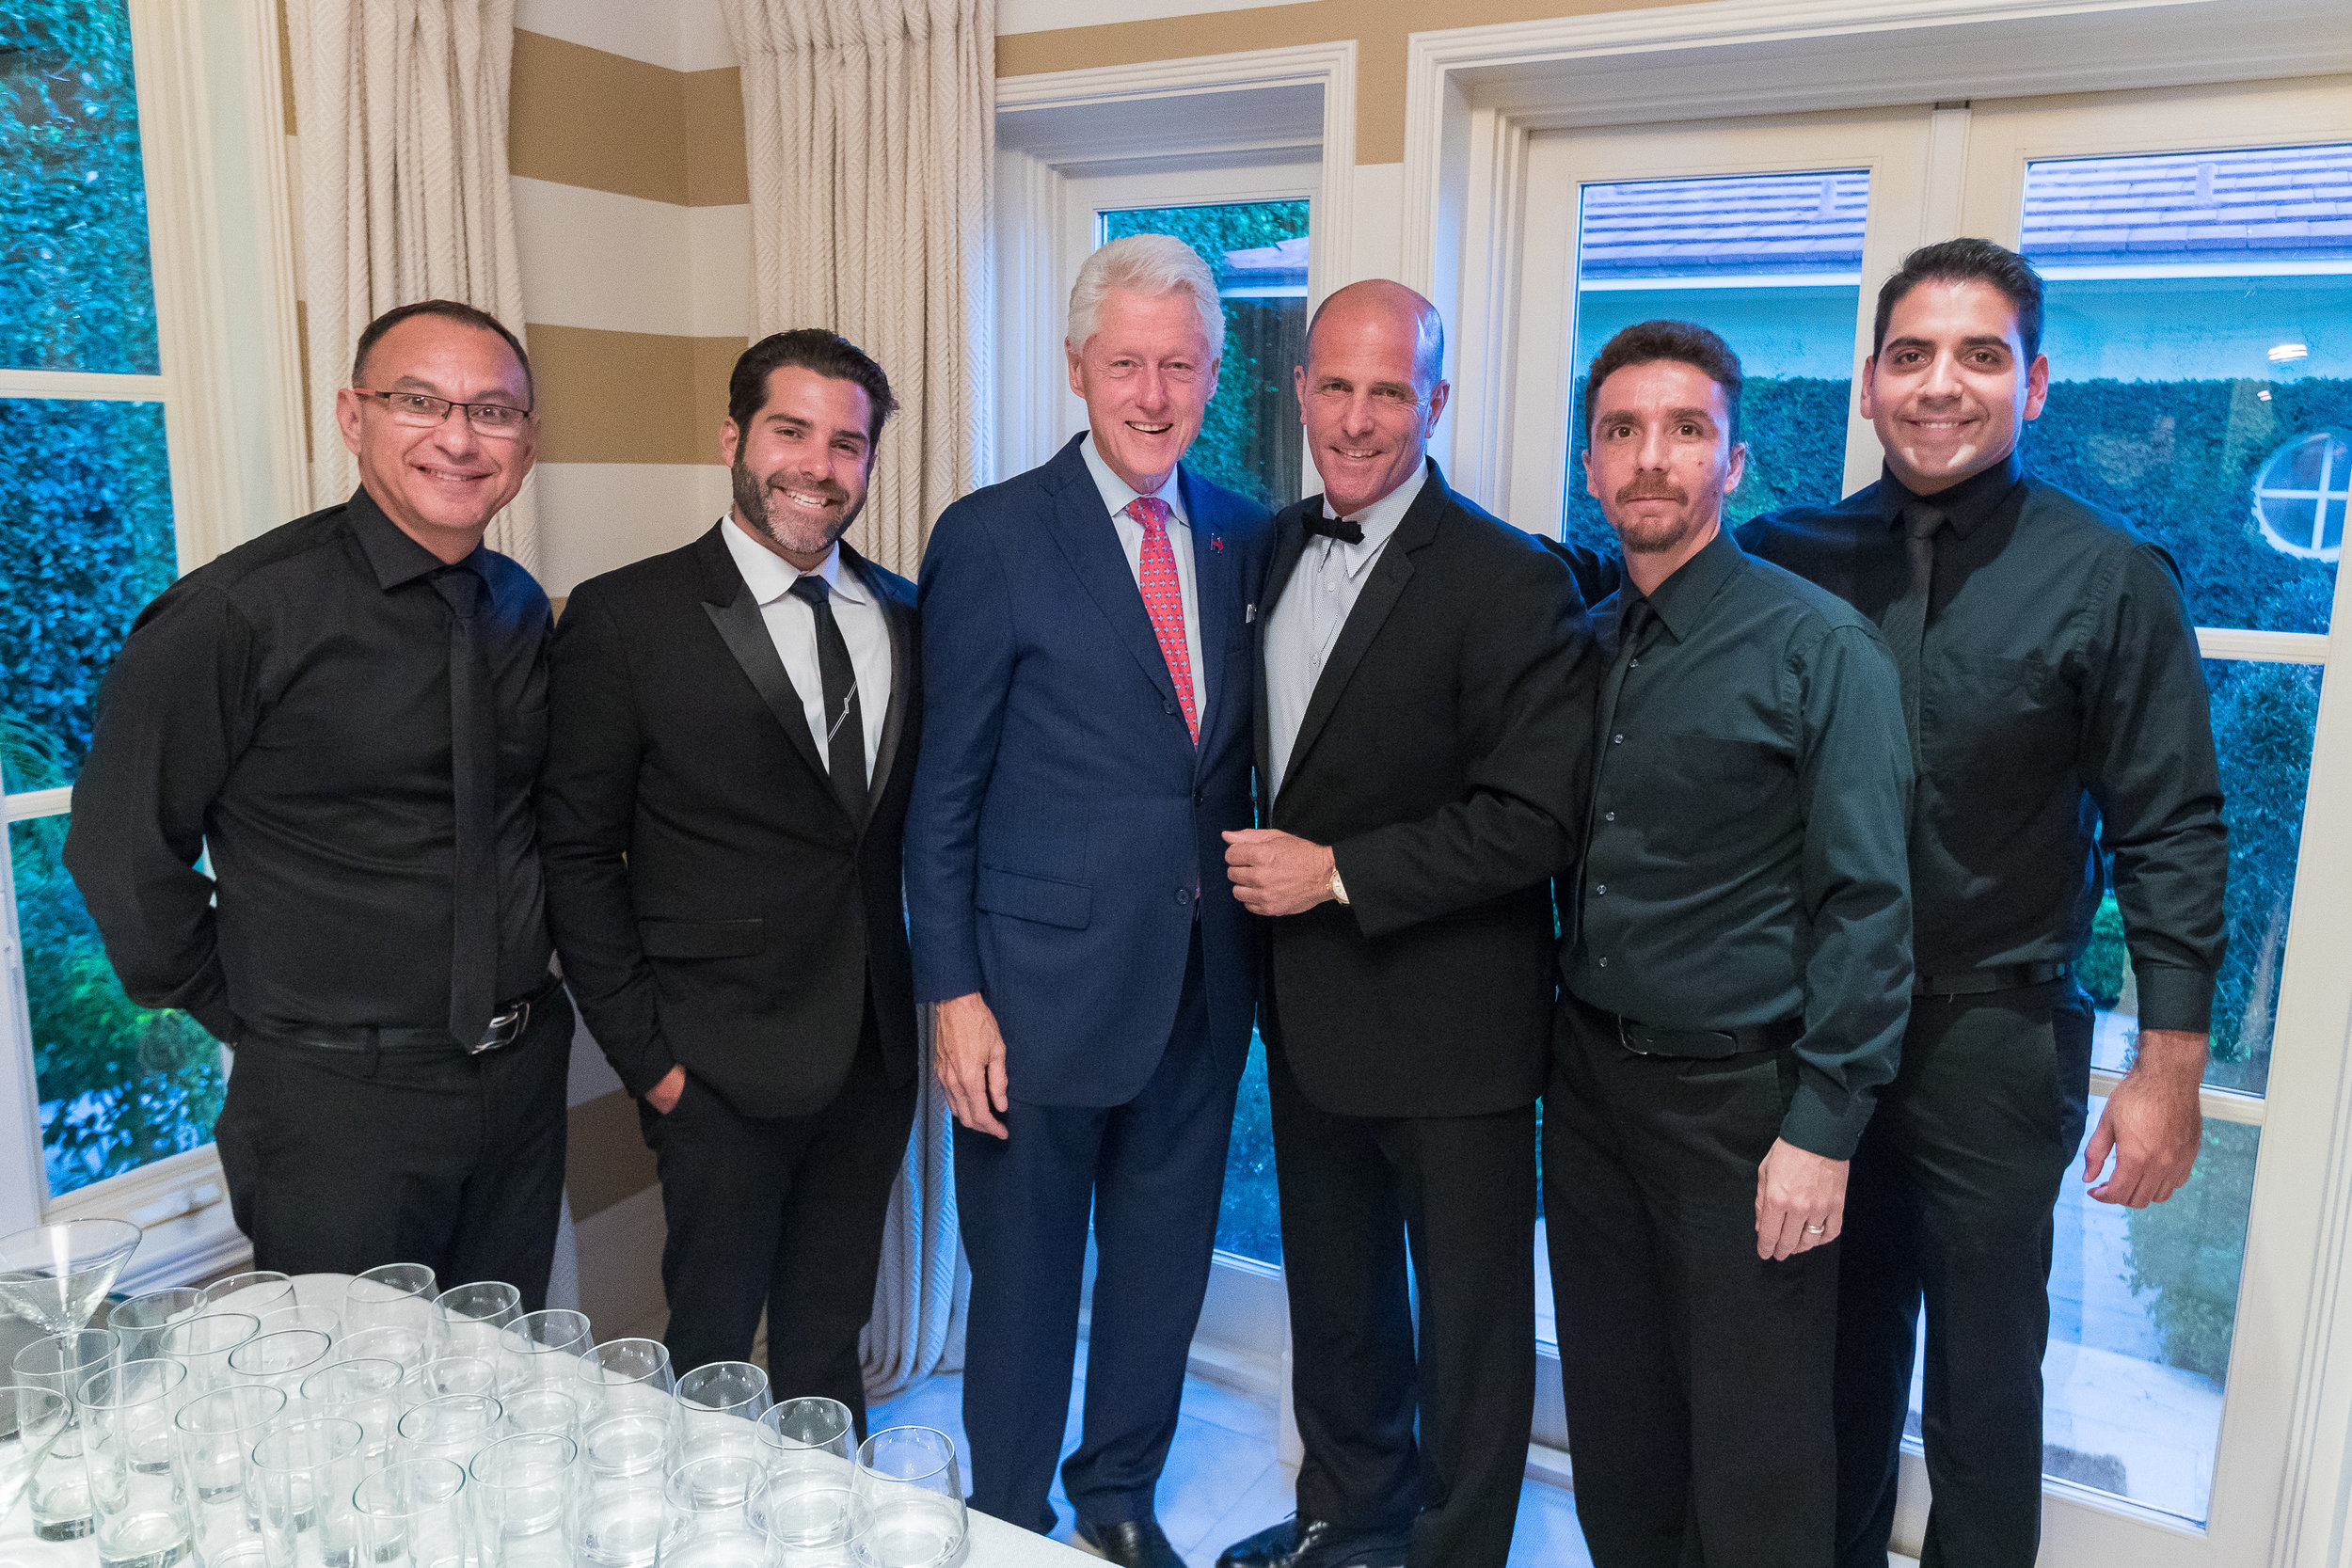 Thierry Isambert's team with Bill Clinton